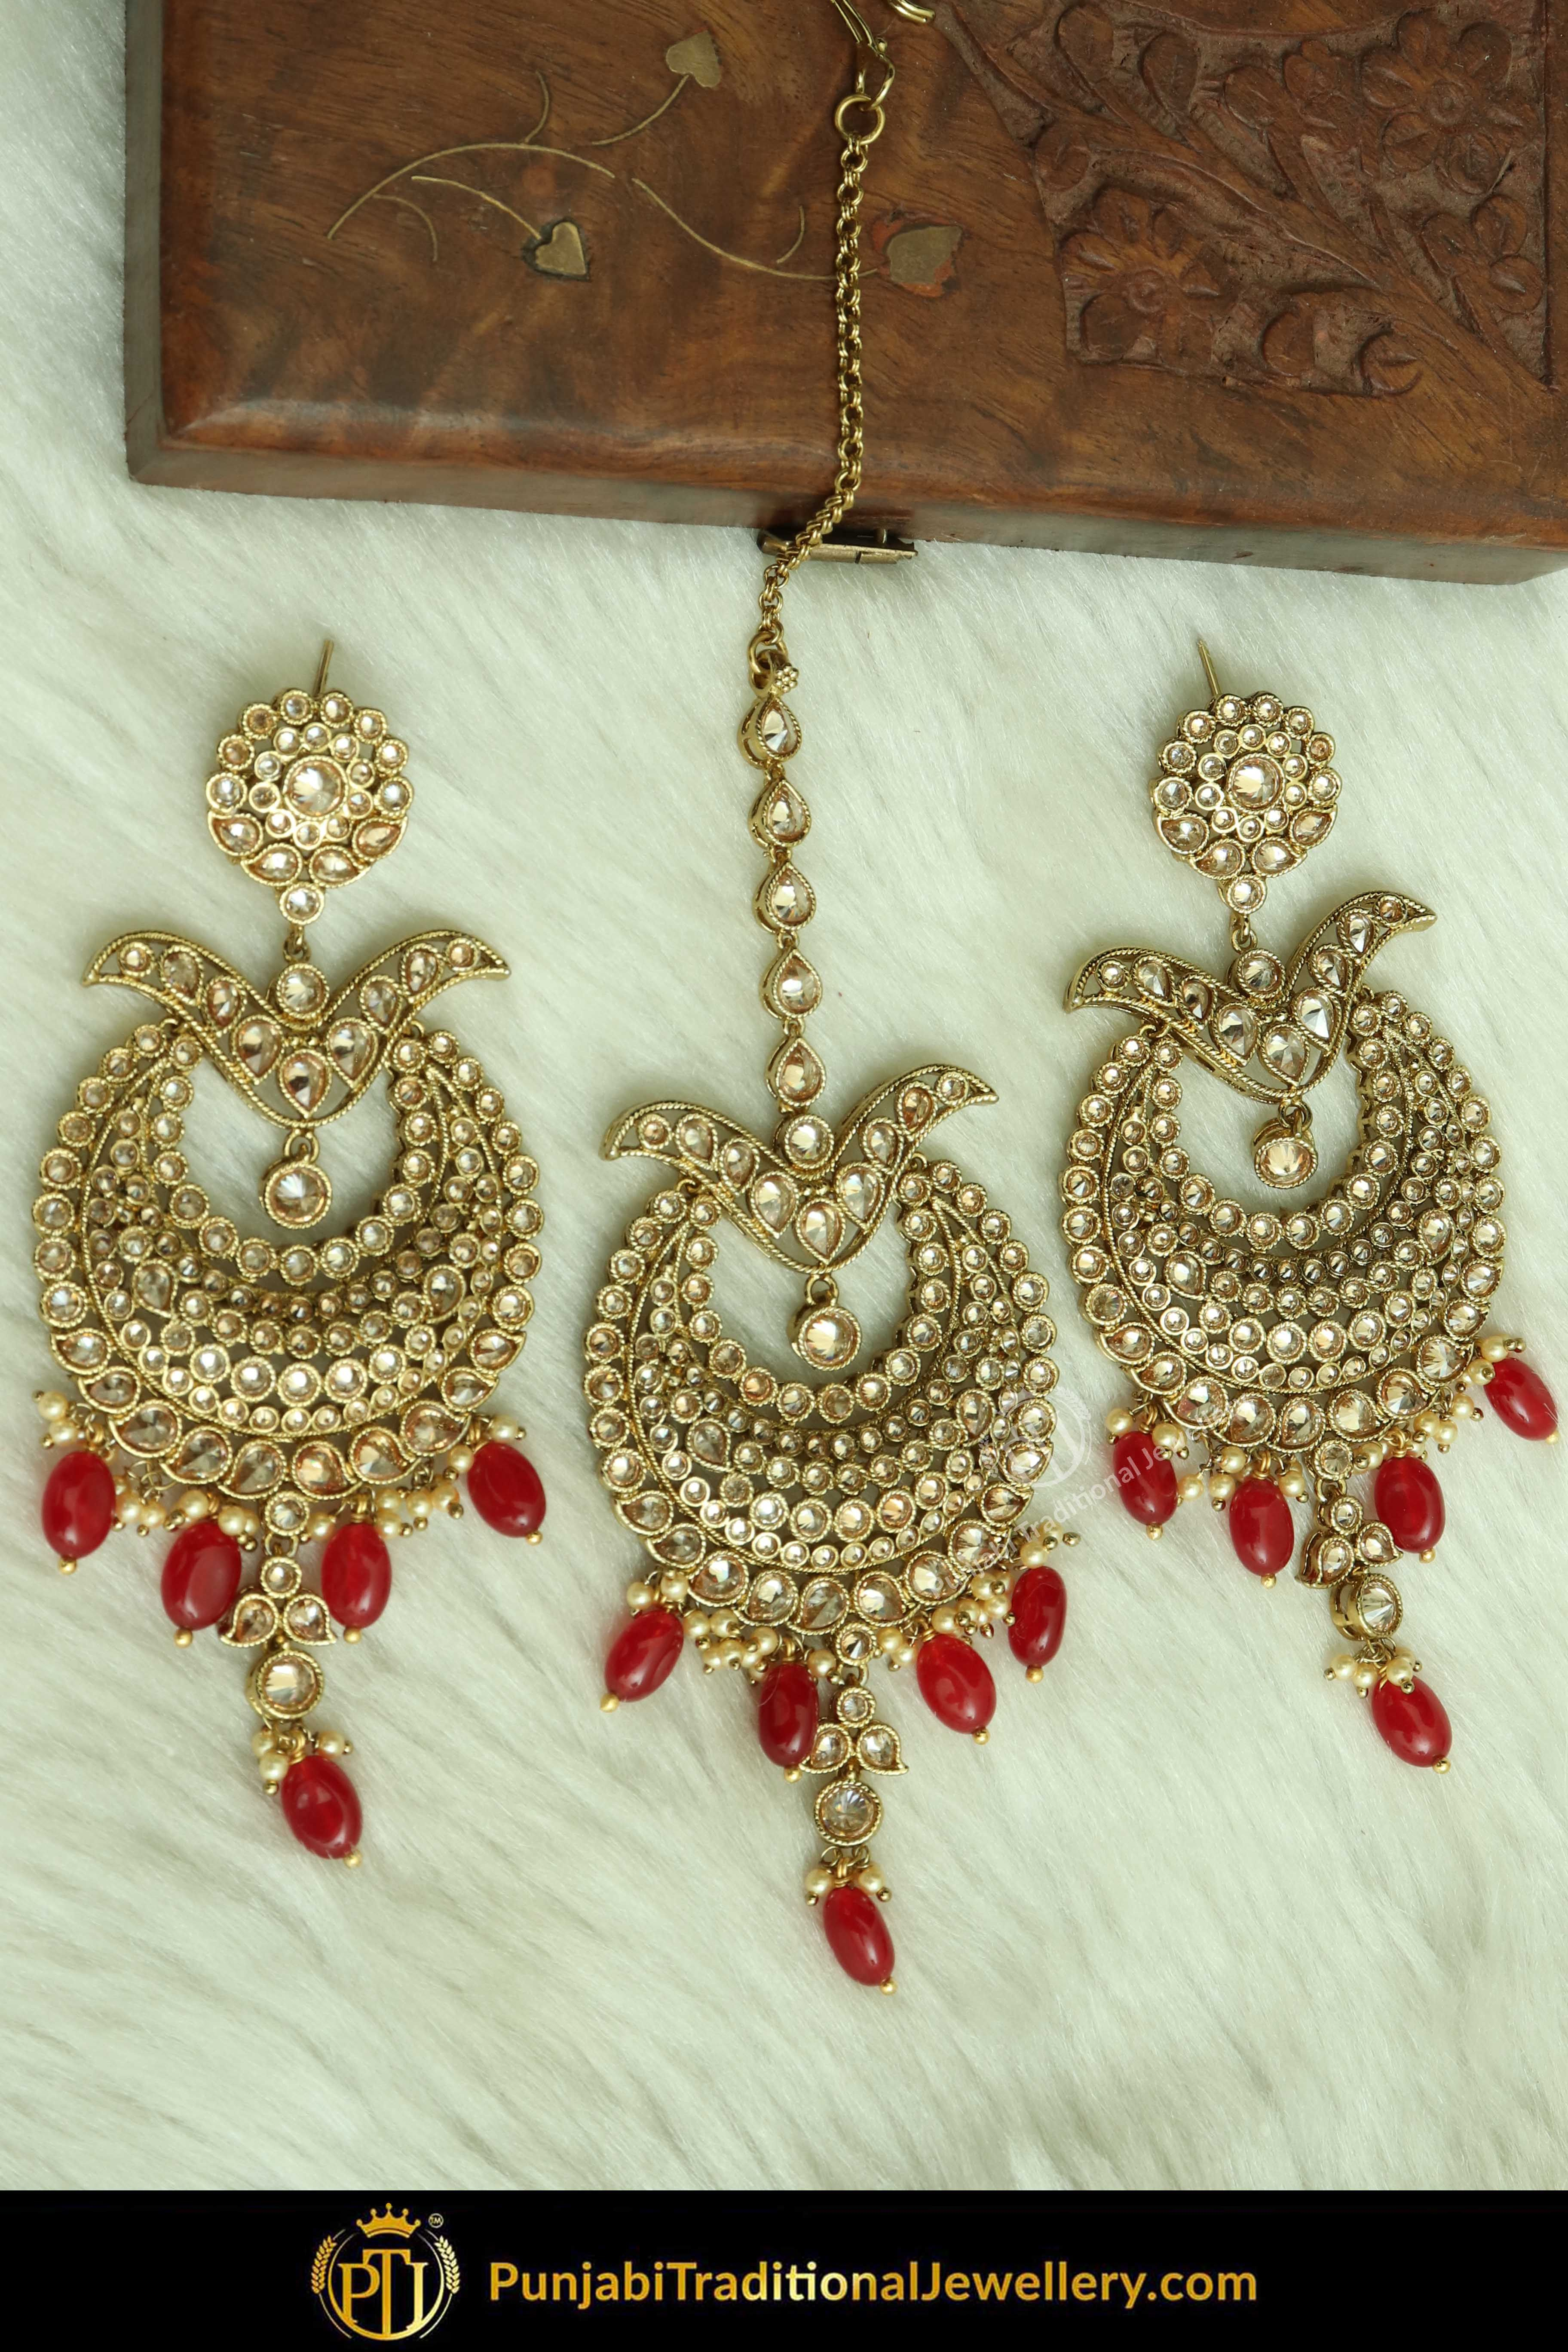 c682e4823 Pinterest: @PunjabiJewellery Antique Gold Finised Champagne Stone Red  Earring Tikka Set You may visit